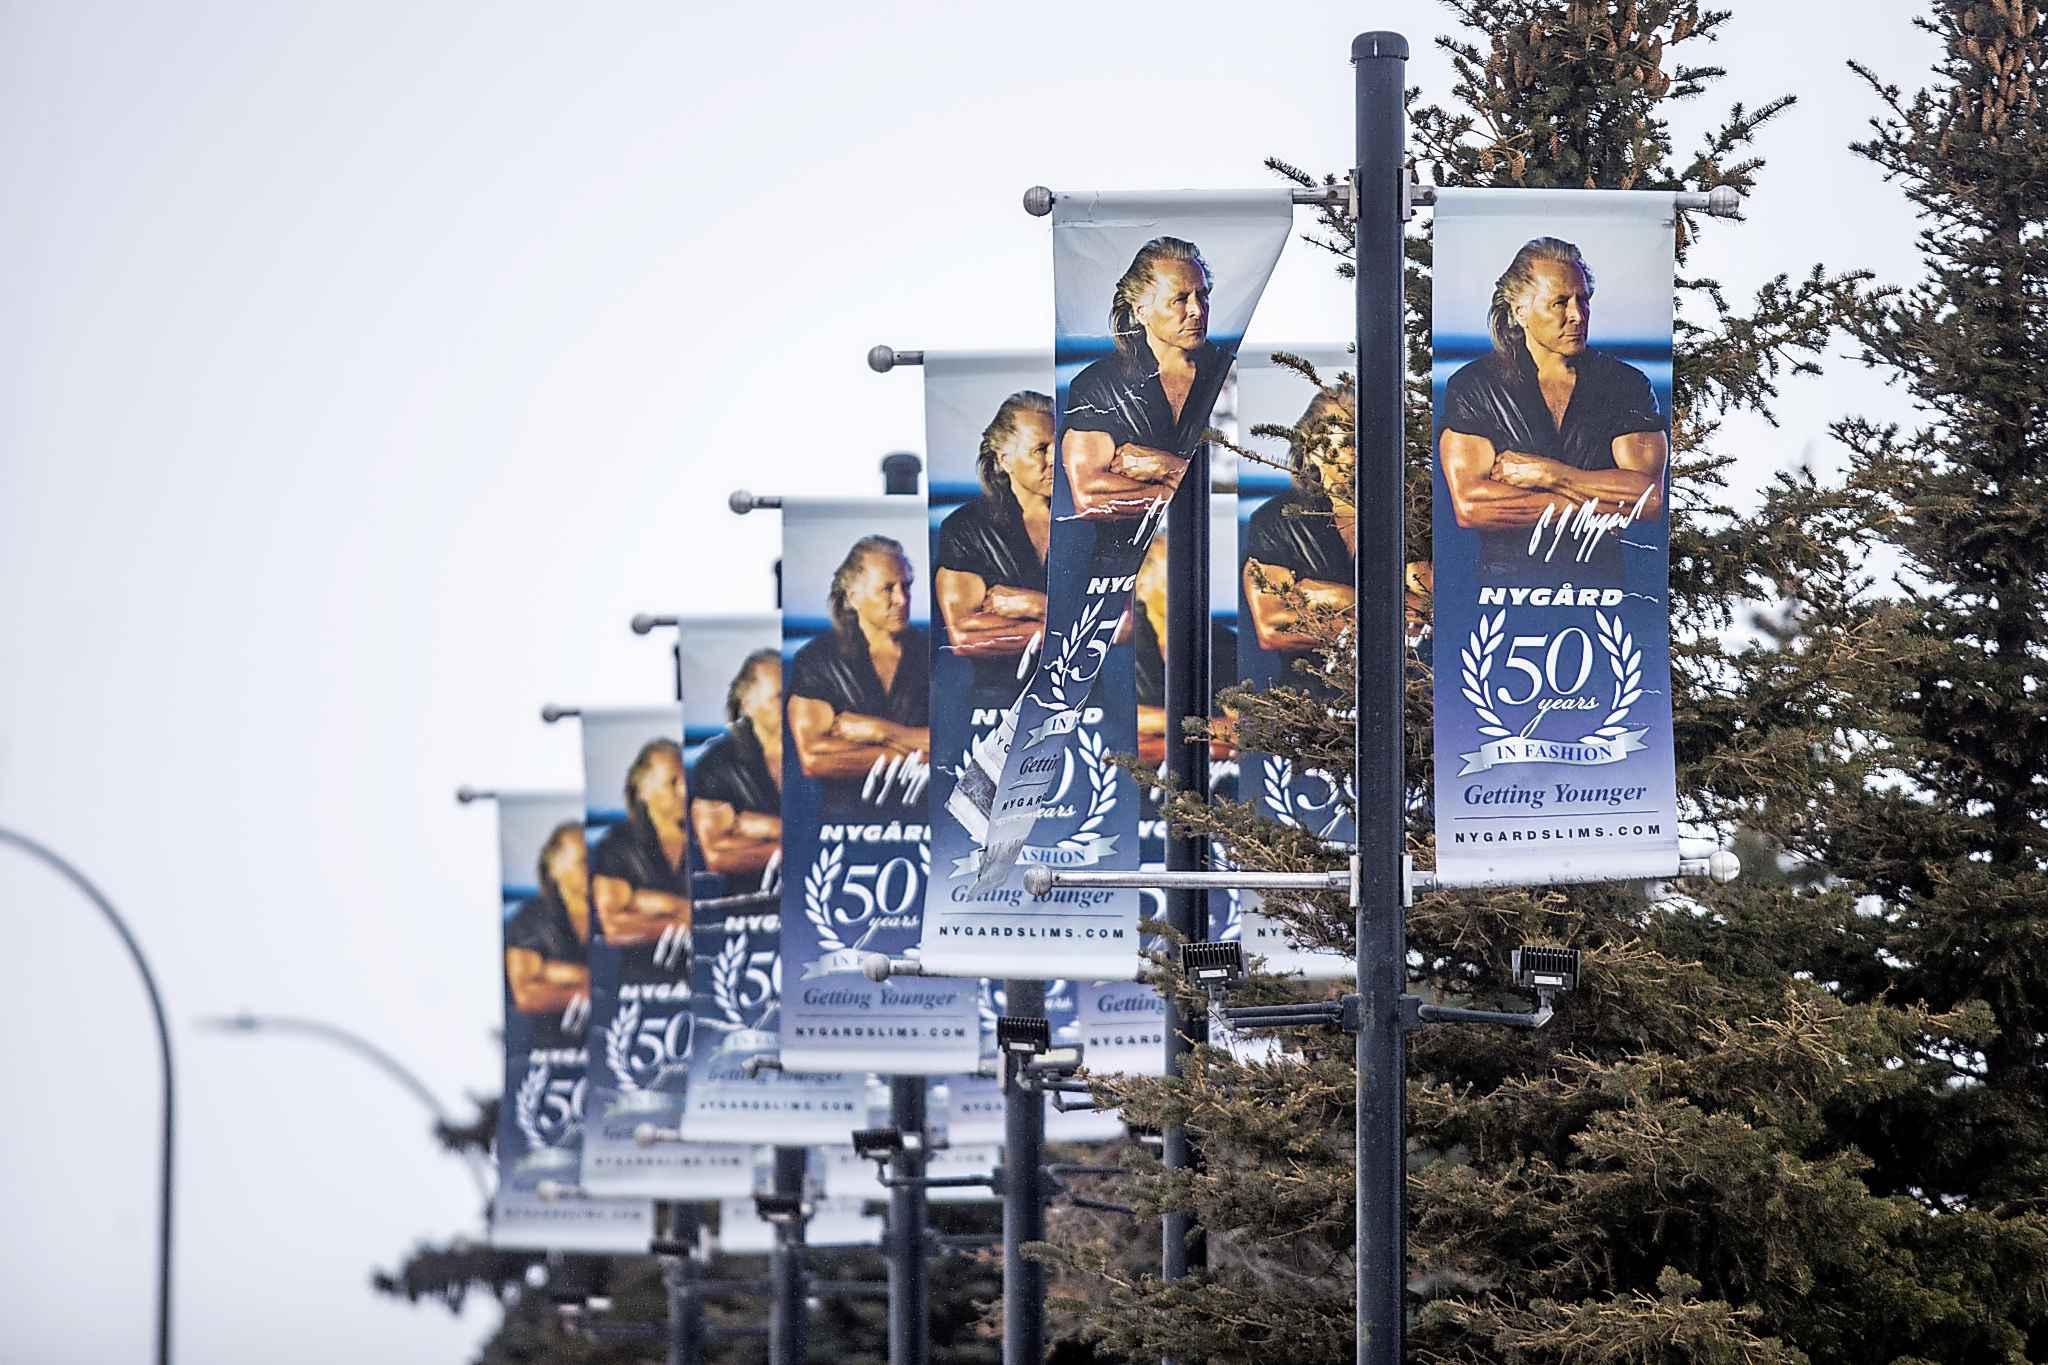 Peter Nygard's image is well-known in Winnipeg. (Mikaela MacKenzie / Winnipeg Free Press)